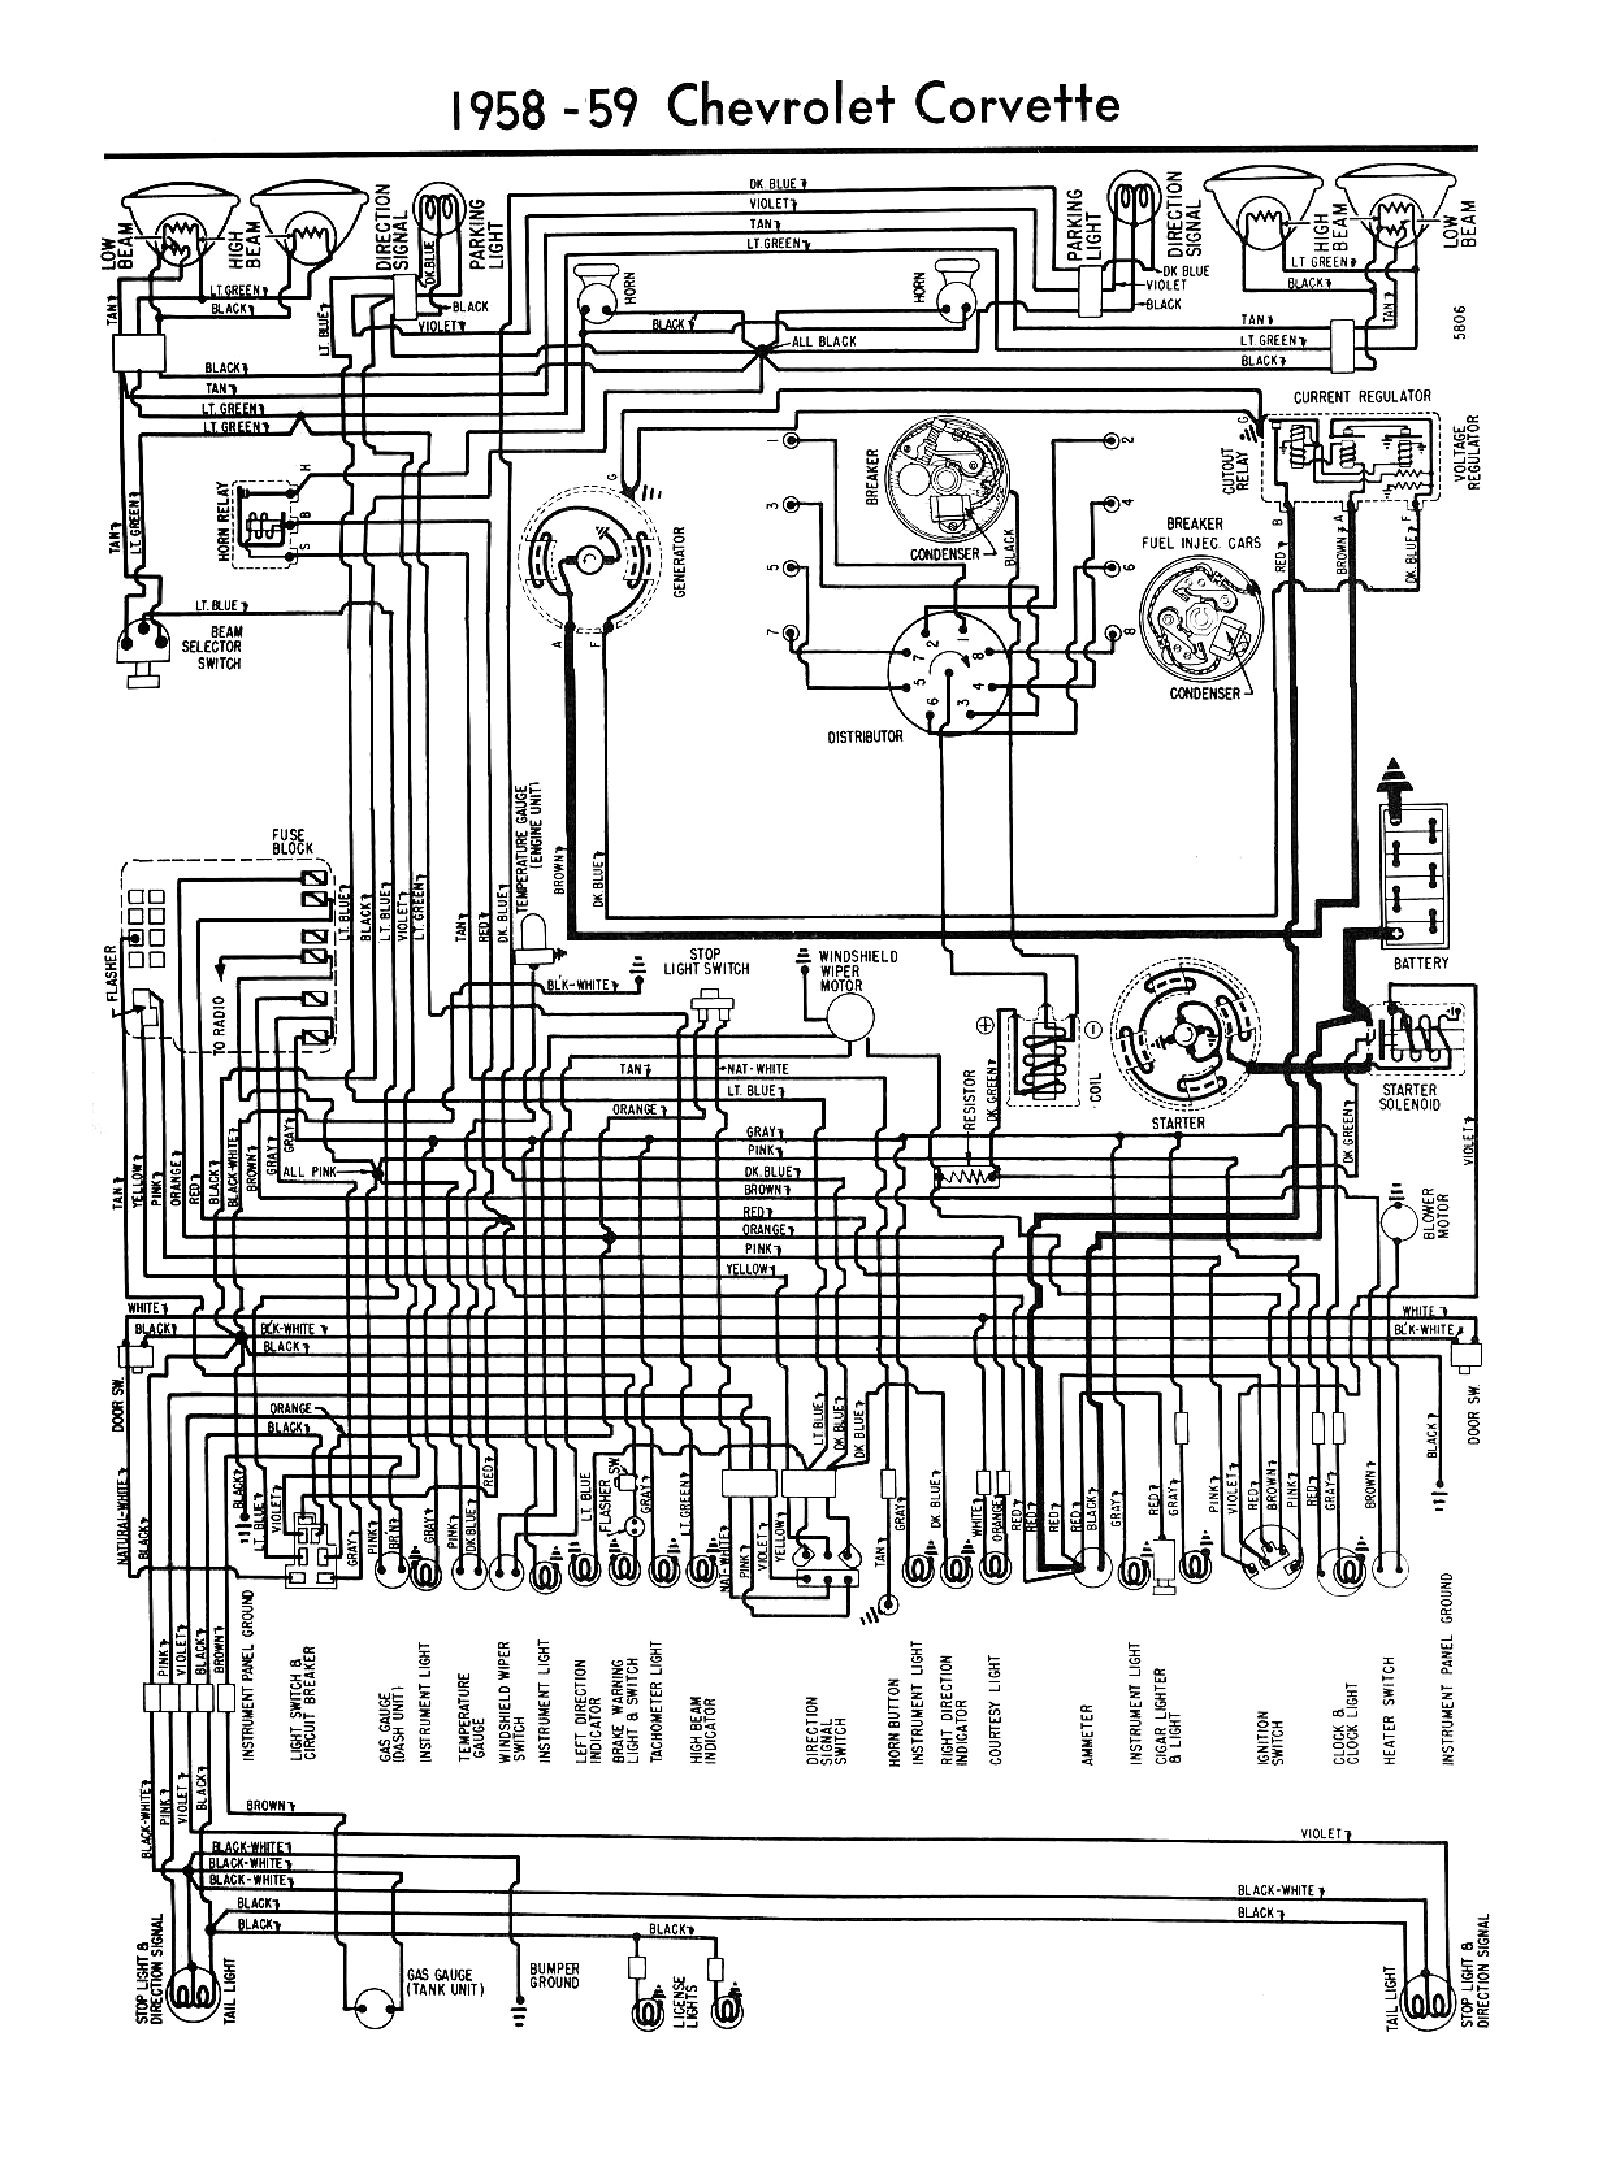 1959 Chevy Truck Wiring Diagram | Wiring Liry on chevy oil pressure sending unit, chevy electrical diagrams, chevy truck diagrams, chevy wiring harness, chevy headlight switch wiring, chevy starting system, chevy speaker wiring, chevy heater core replacement, chevy maintenance schedule, chevy starter diagrams, gmc fuse box diagrams, 1999 chevrolet truck diagrams, chevy cooling system, chevy accessories, chevy brake diagrams, chevy truck wiring, chevy alternator diagrams, chevy radio wiring, chevy alternator wiring info, chevy gas line diagrams,